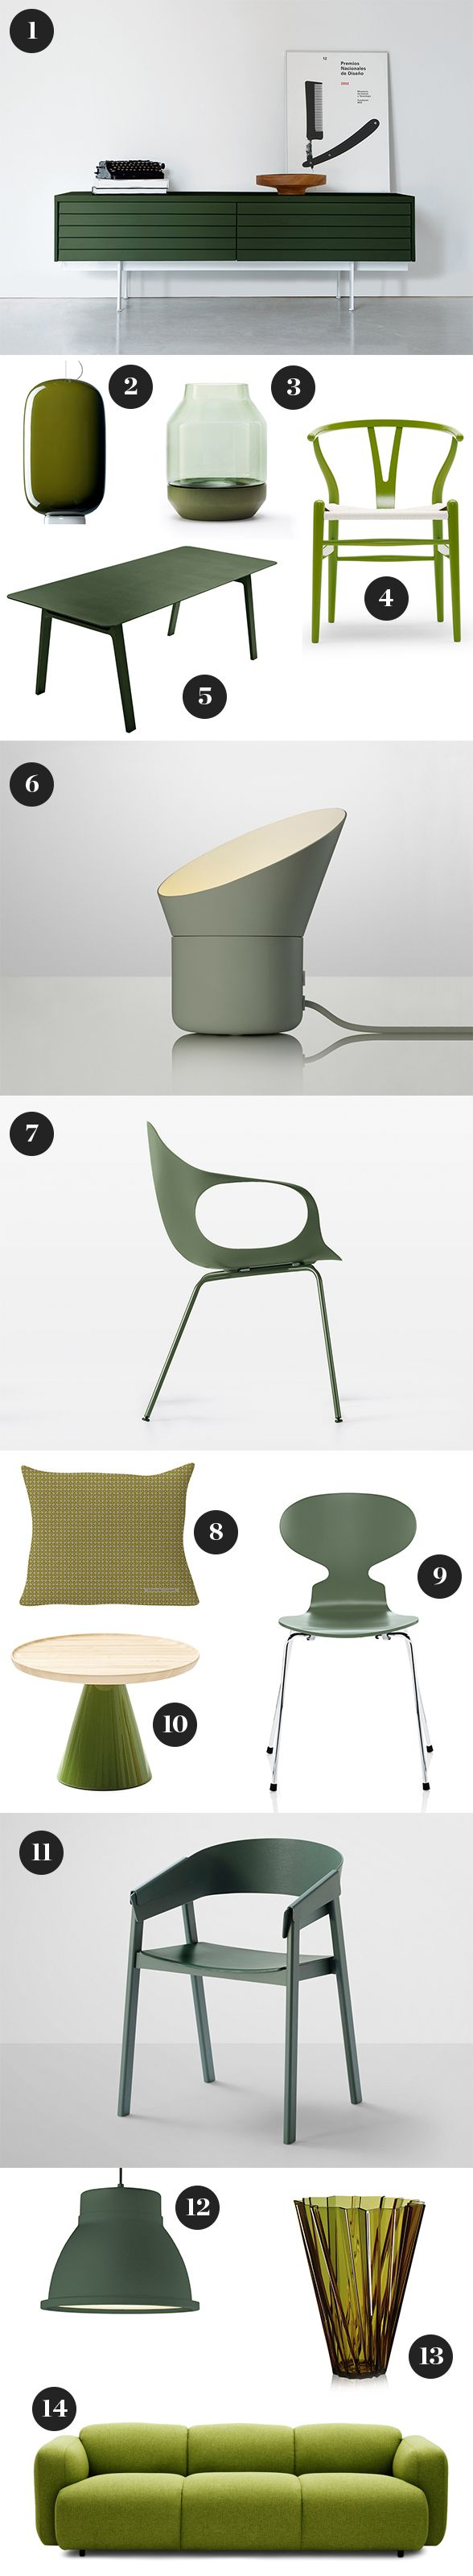 1. Punt Sussex Low Sideboard 2. Foscarini Chouchin 2 Suspension Light 3. Muuto Elevated Vase 4. Carl Hansen CH24 Wishbone Chair Citrus Version 5. Casamania Pontoon Table 6. Muuto Up Lamp 7. Kristalia Elephant Chair 8. Vitra Square Diamonds Cushion 9. Fritz Hansen Ant Chair with 4 Legs 10. Sancal Pion Side Table 11. Muuto Cover Chair 12. Muuto Studio Pendant Light 13. Kartell Shanghai Vase 14. Normann Copenhagen Swell Three Seater Sofa